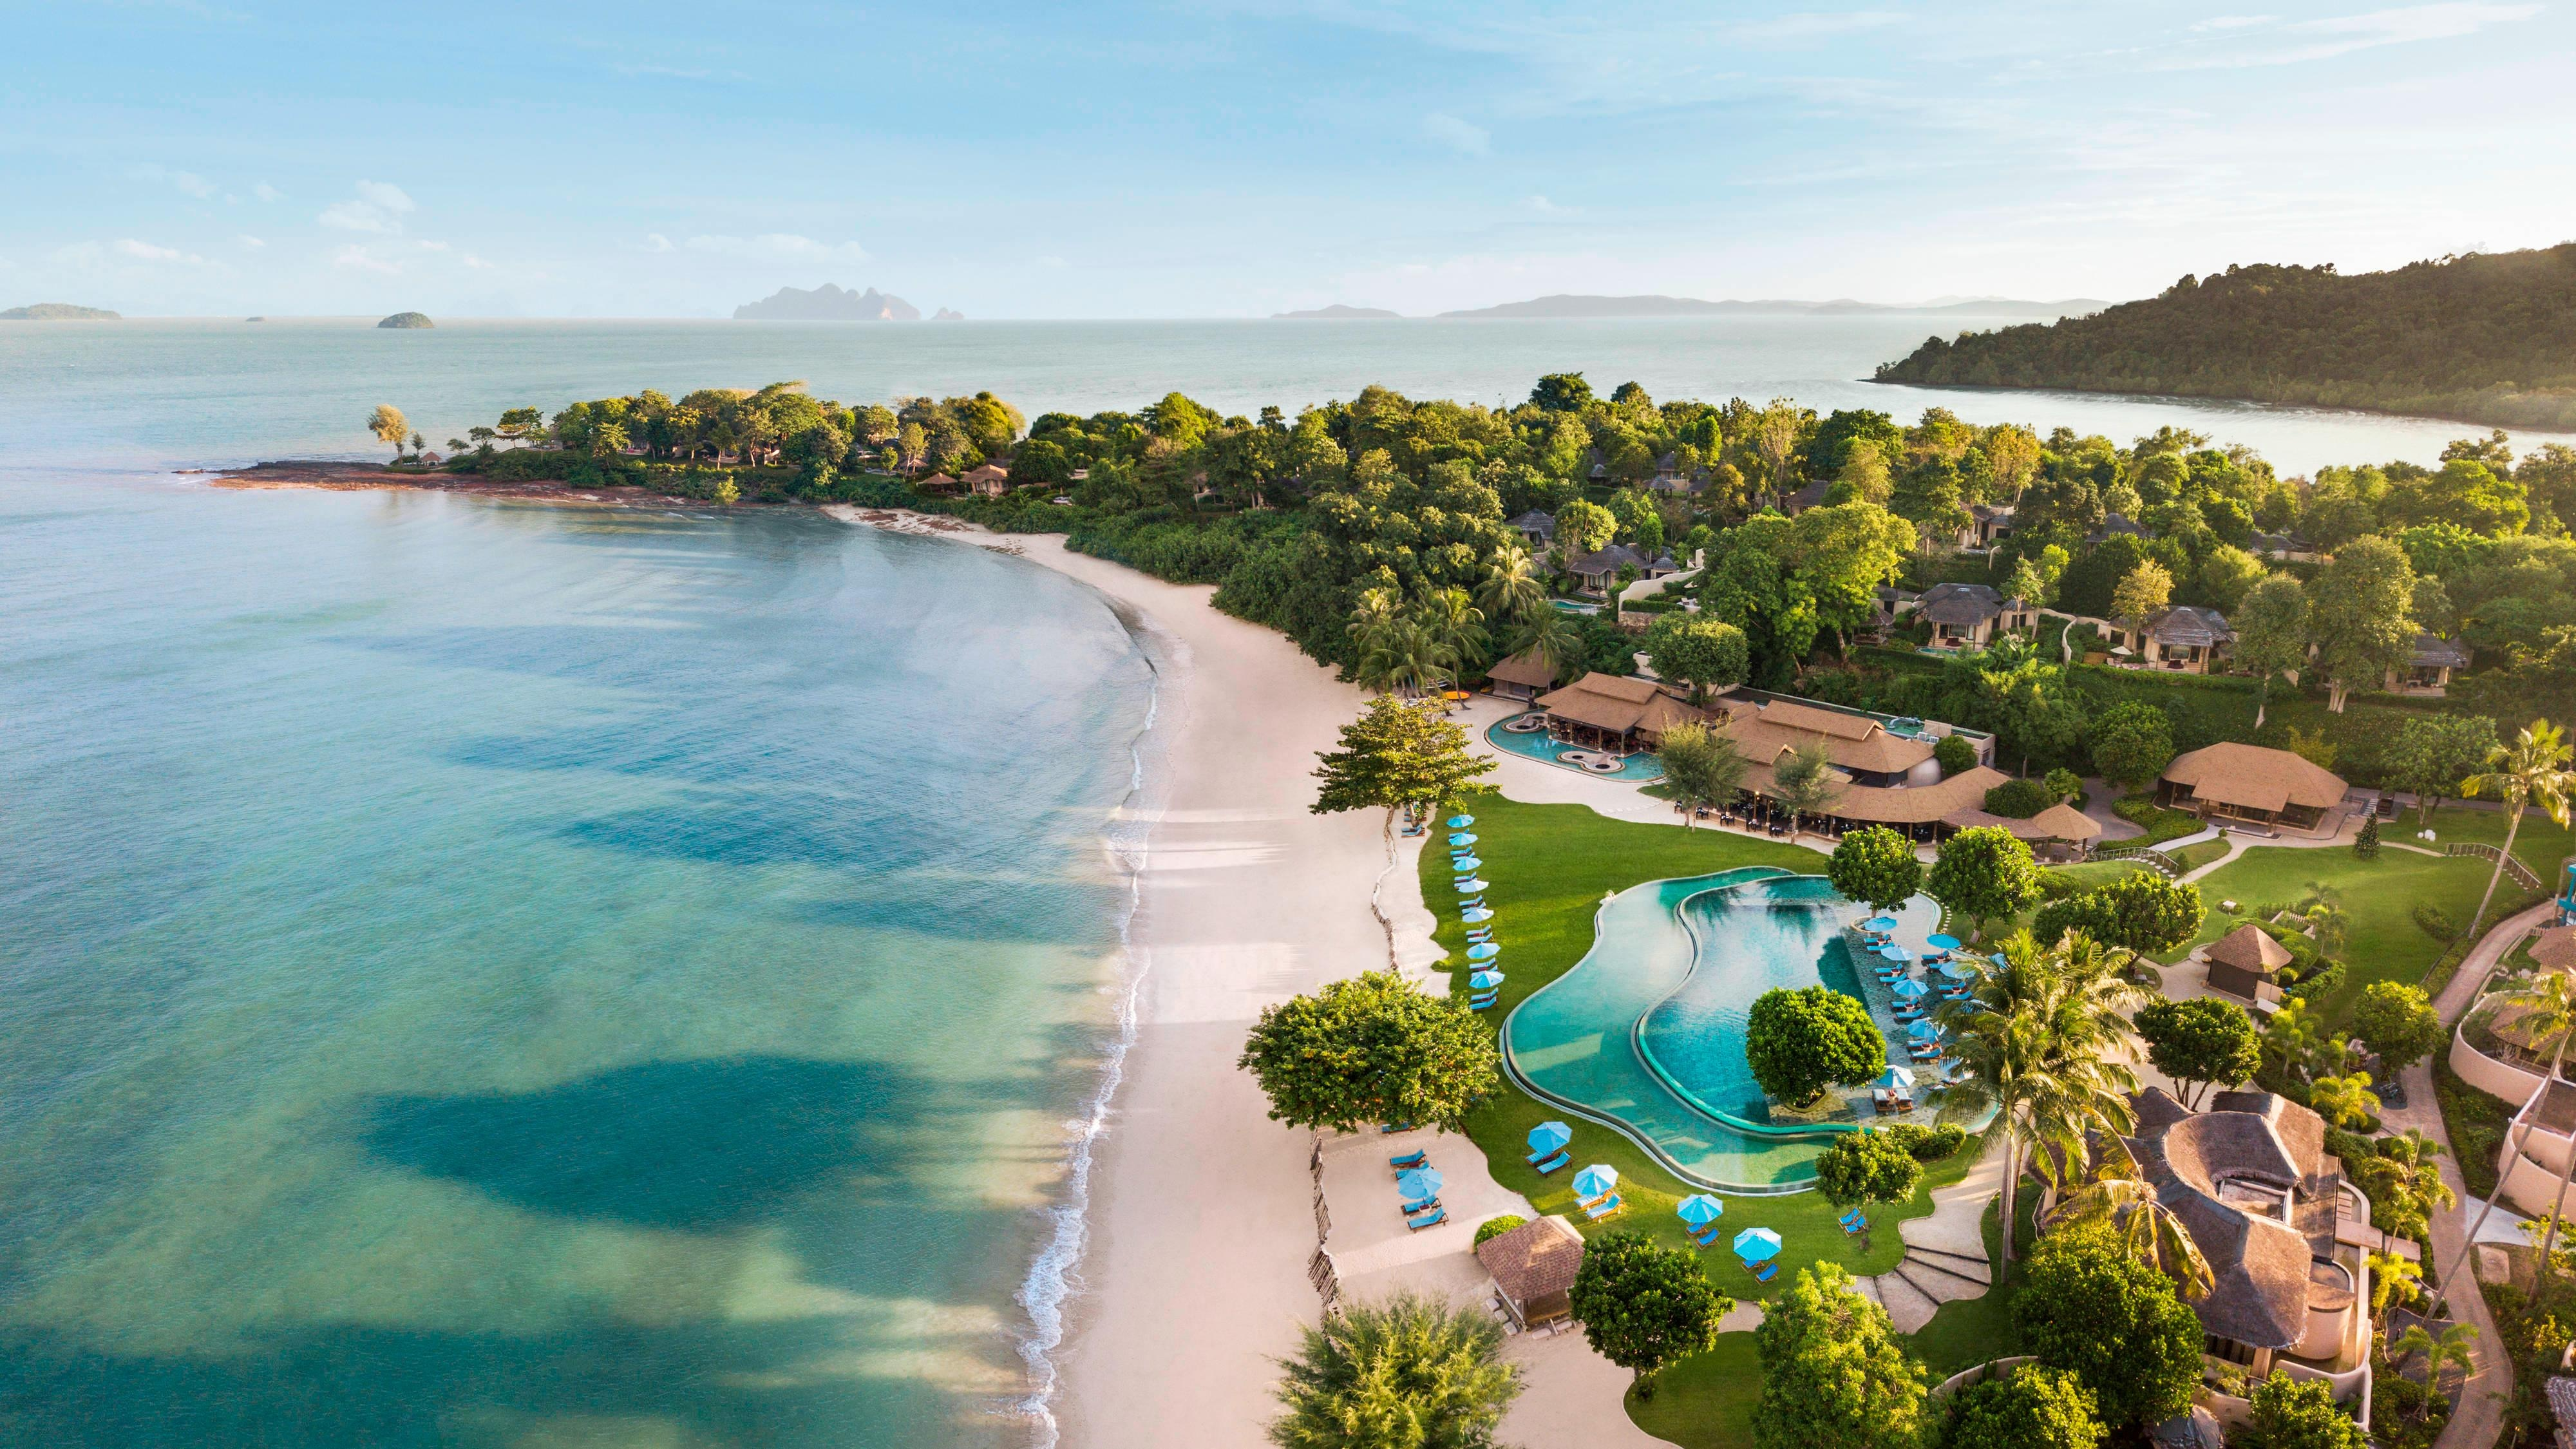 The naka phuket review